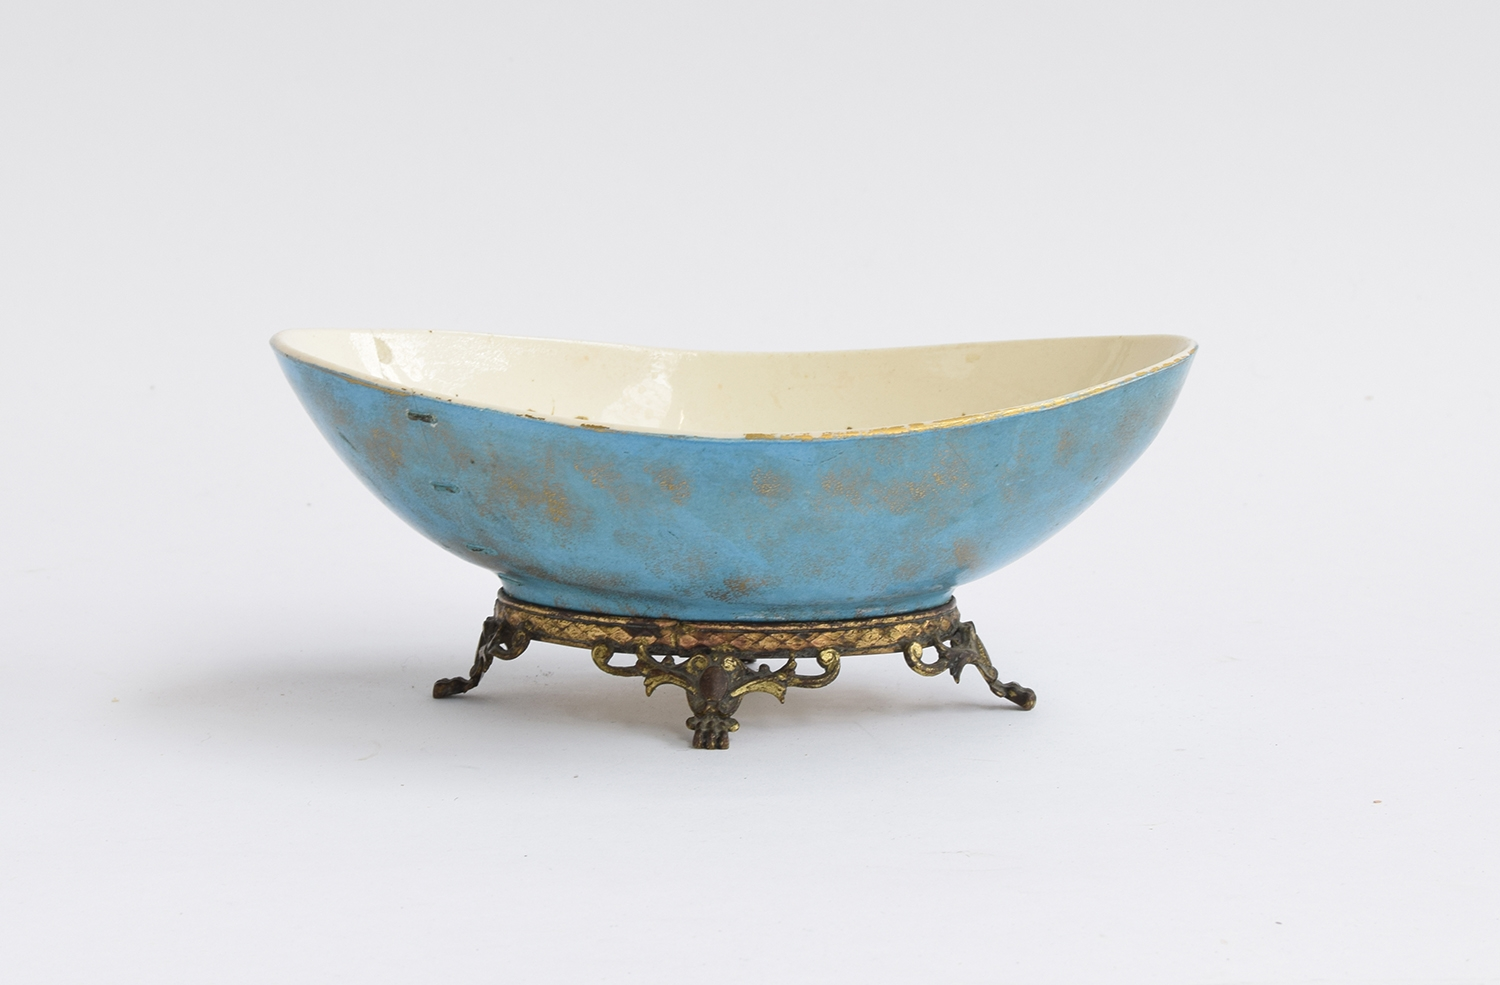 A Hautin Boulenger & Cie Choisy-le-Roi bowl, the white interior decorated with hand painted gold - Image 3 of 5